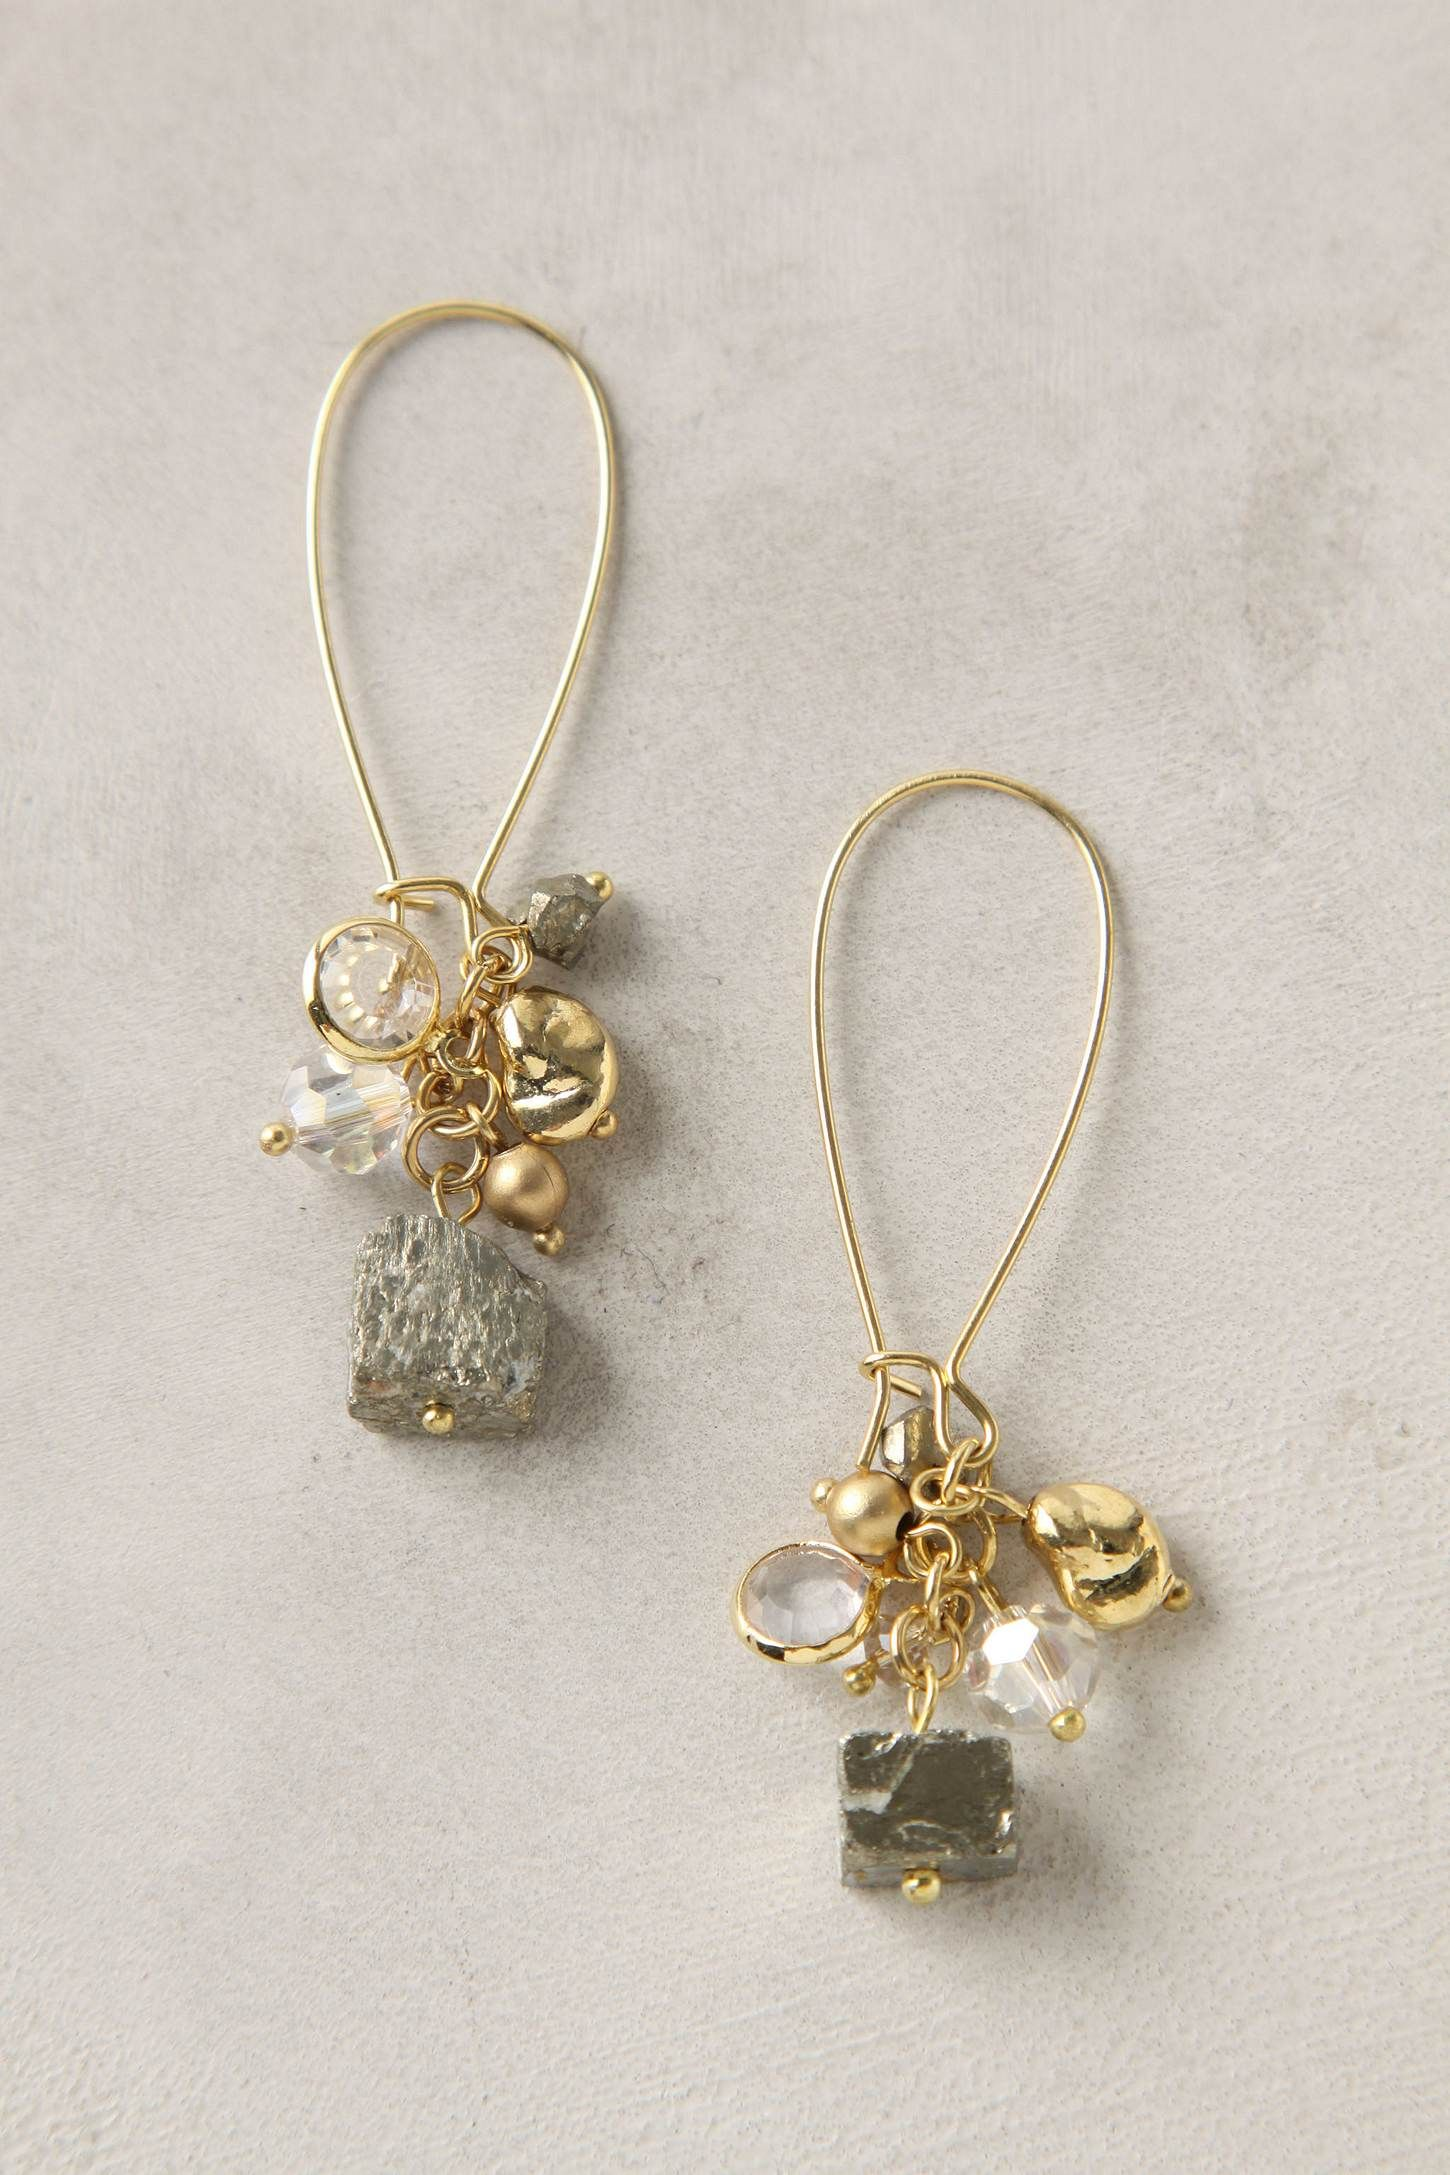 Pacific Shimmer Earrings from Anthropologie $28 I think I need these!